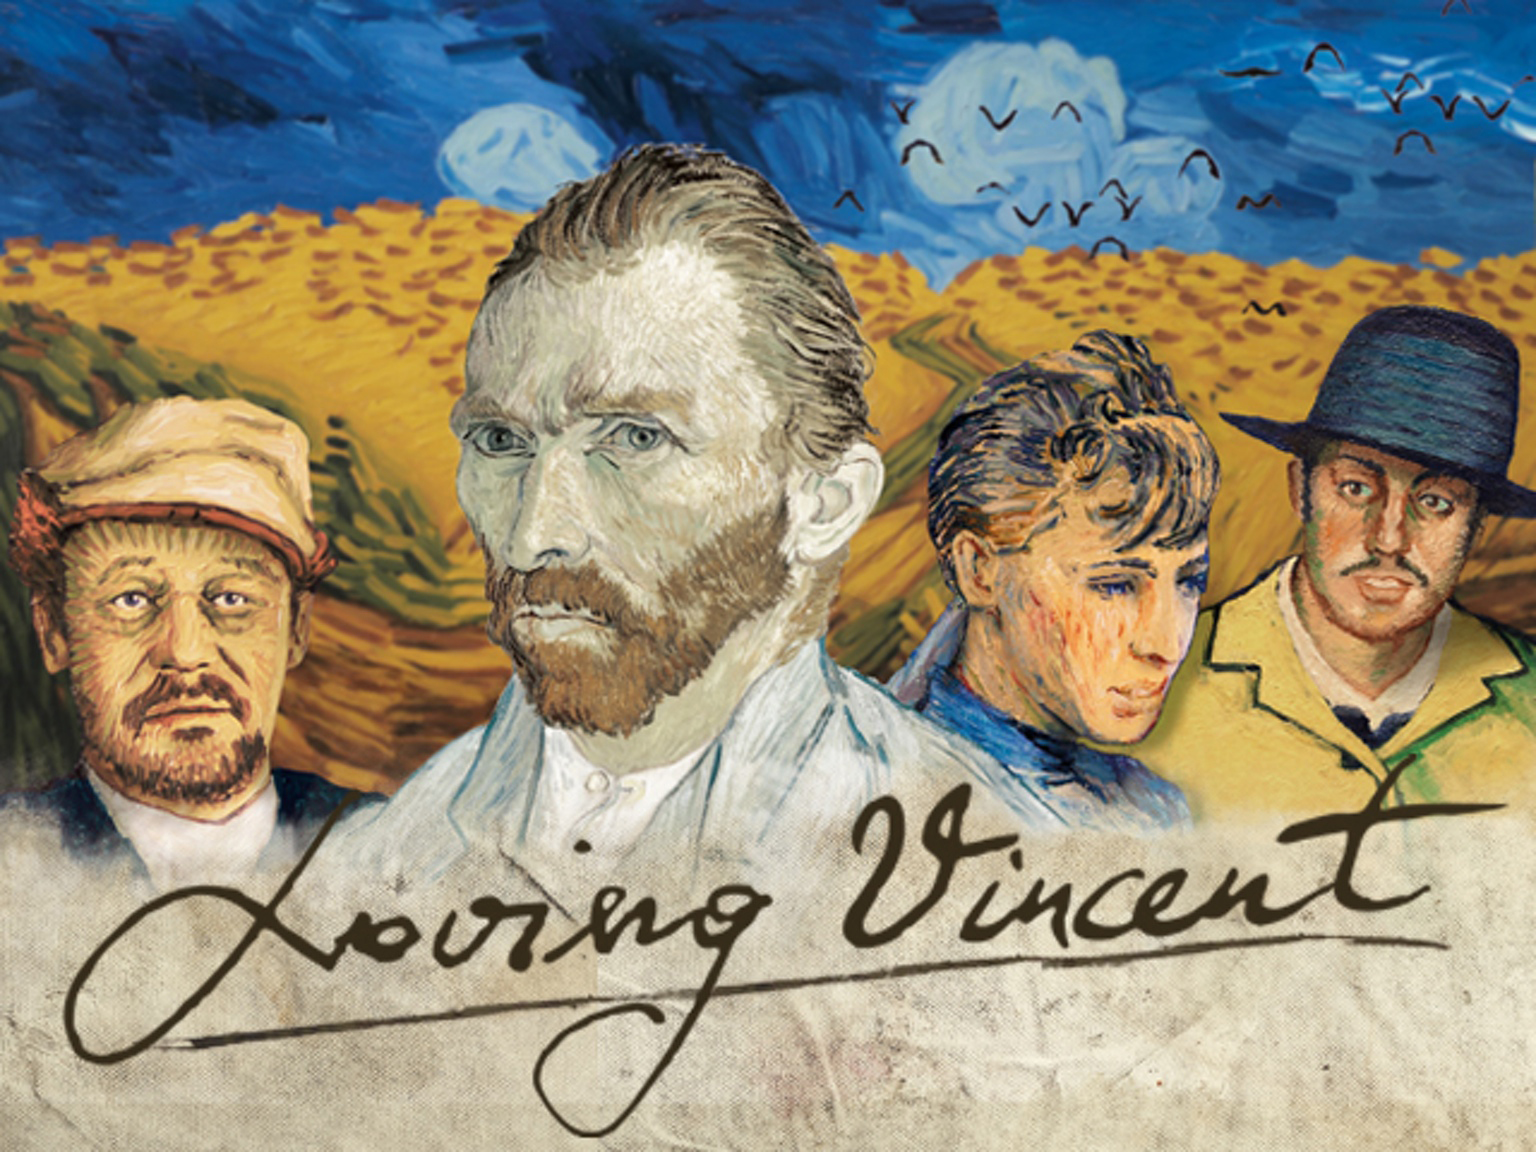 Loving Vincent - Film about Van Gogh Hand Drawn & Painted in Oils